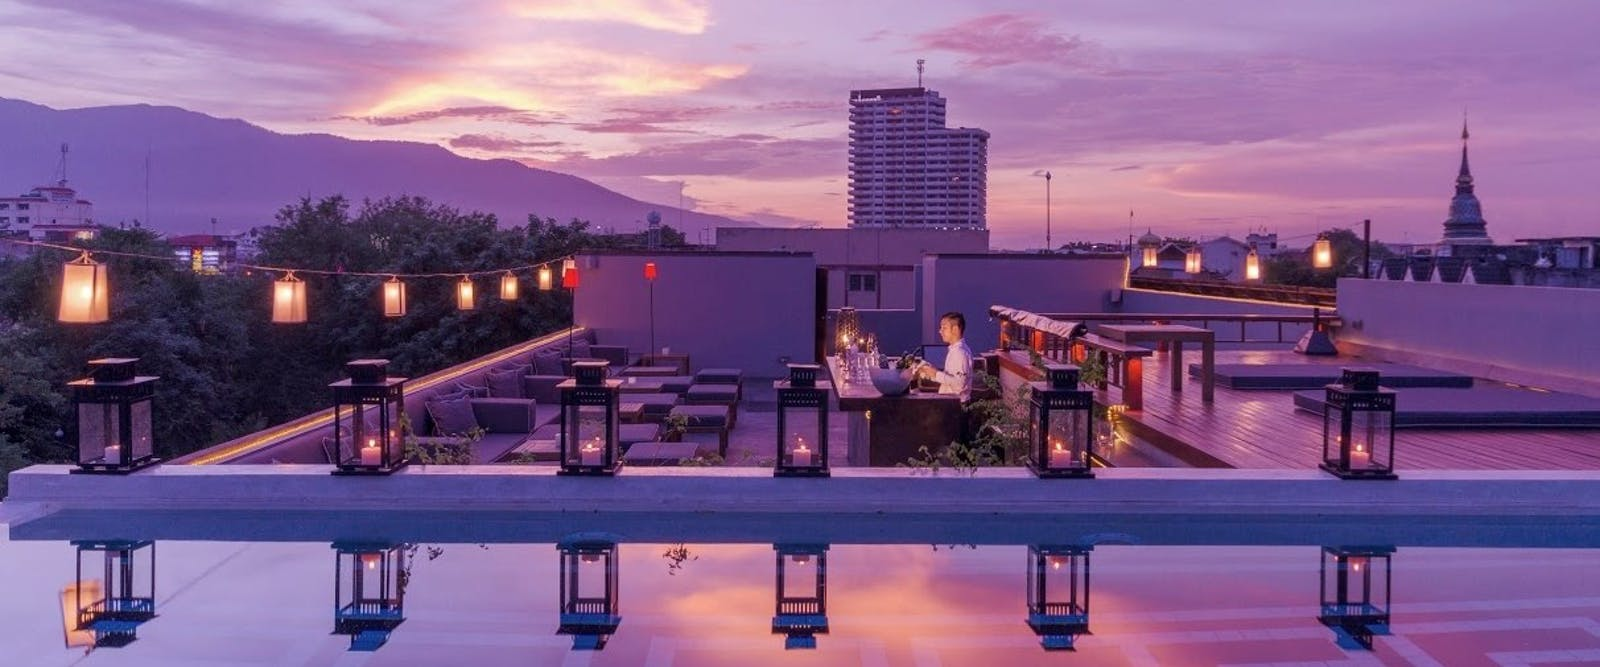 Rooftop bar at Sala Lanna Chiang Mai, Thailand